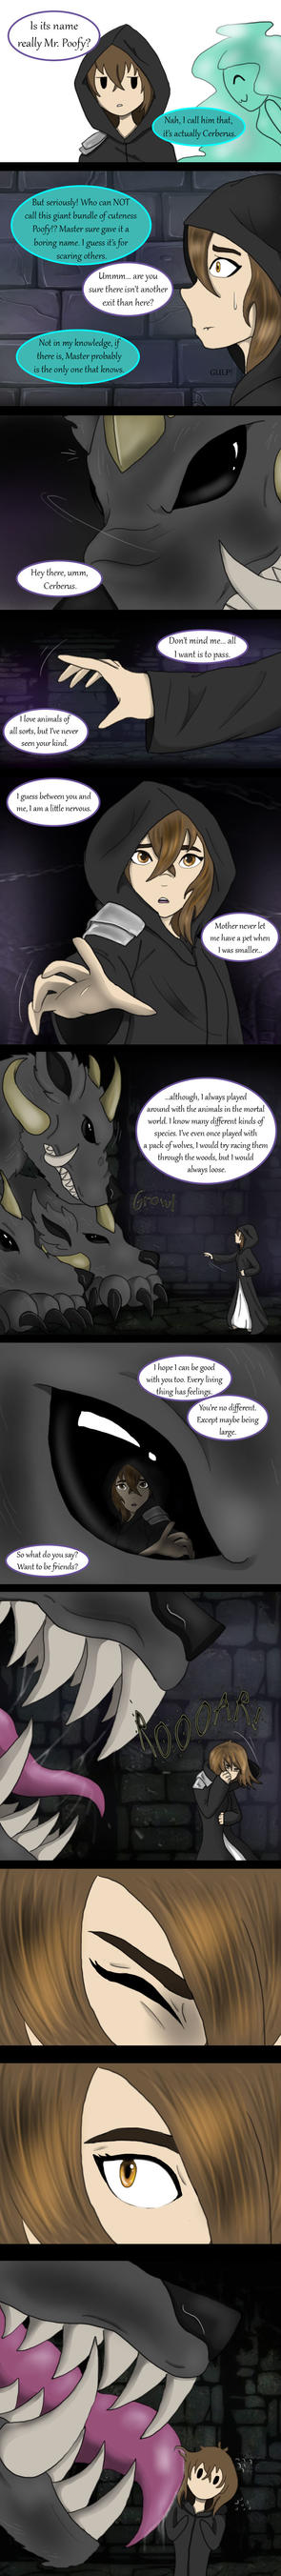 Forbiddentale page 37 by joselyn565